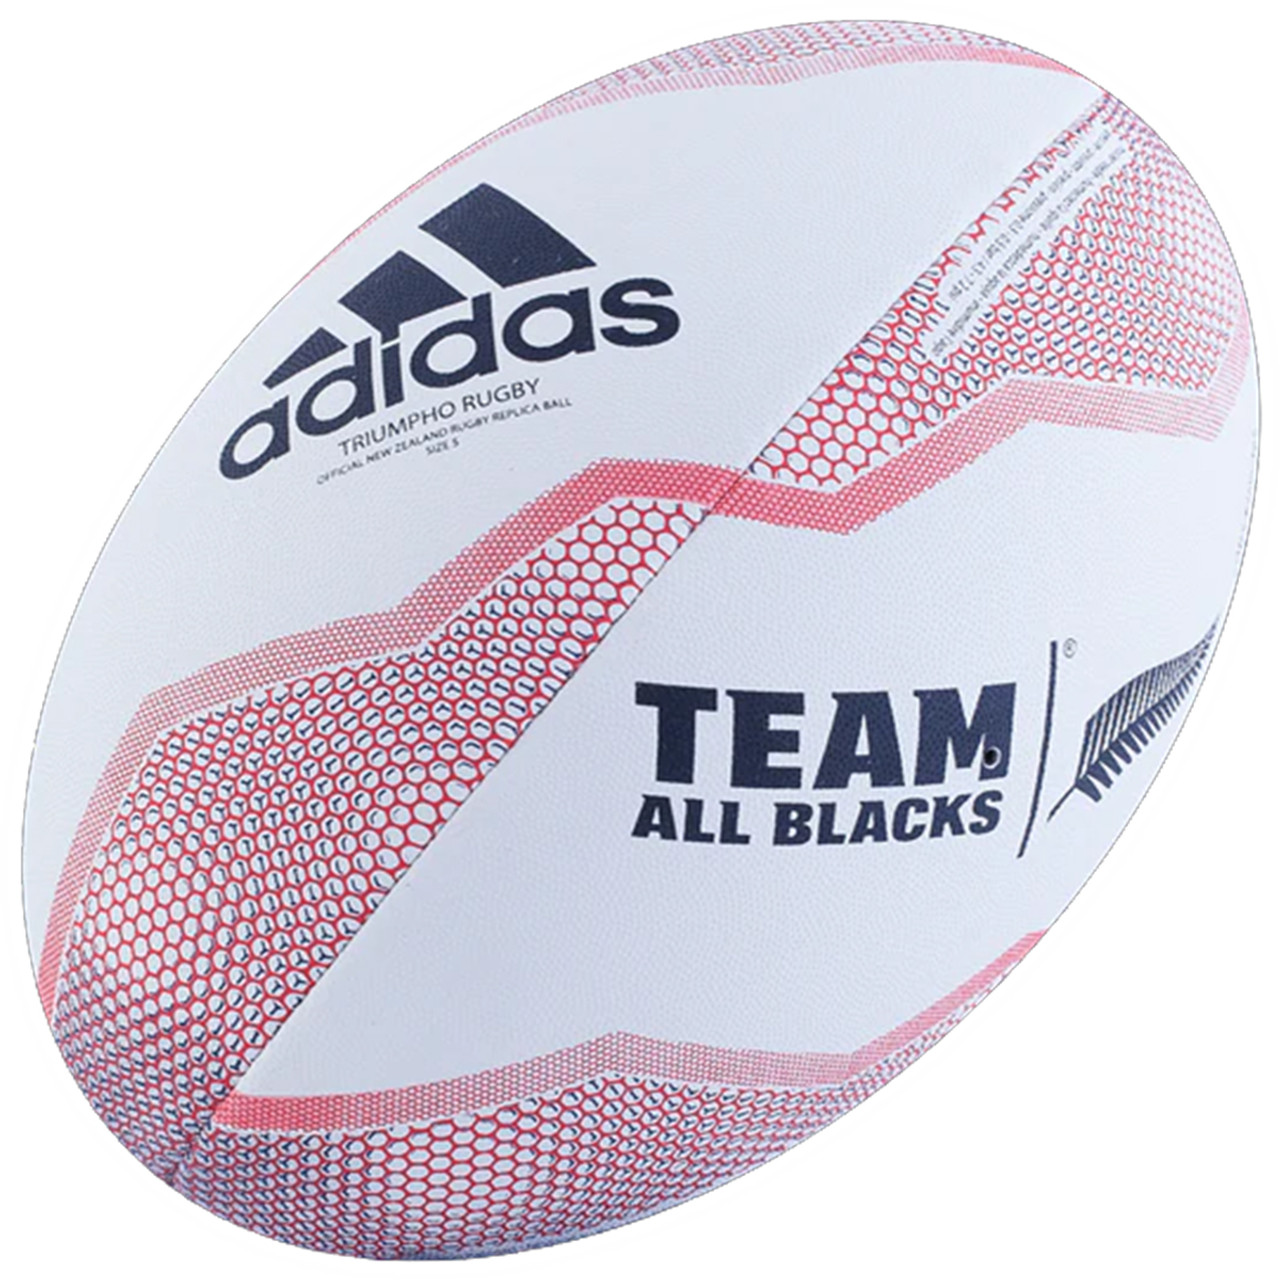 Suavemente boca Egipto  Adidas All Blacks Supporter Ball on sale at Rugby City | 24.99